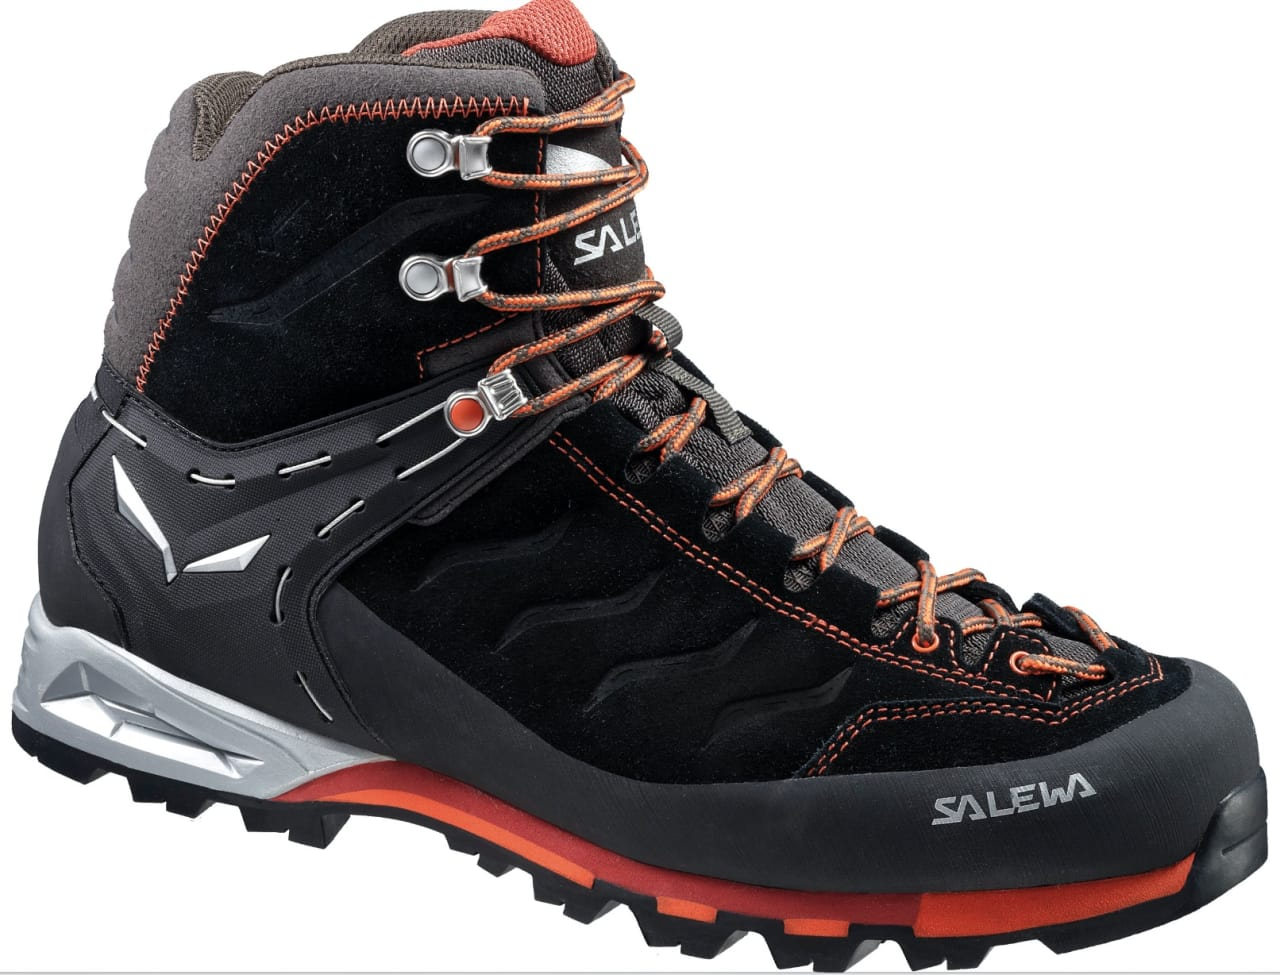 The 14 Best Hiking Shoes and Boots, According to Reviews